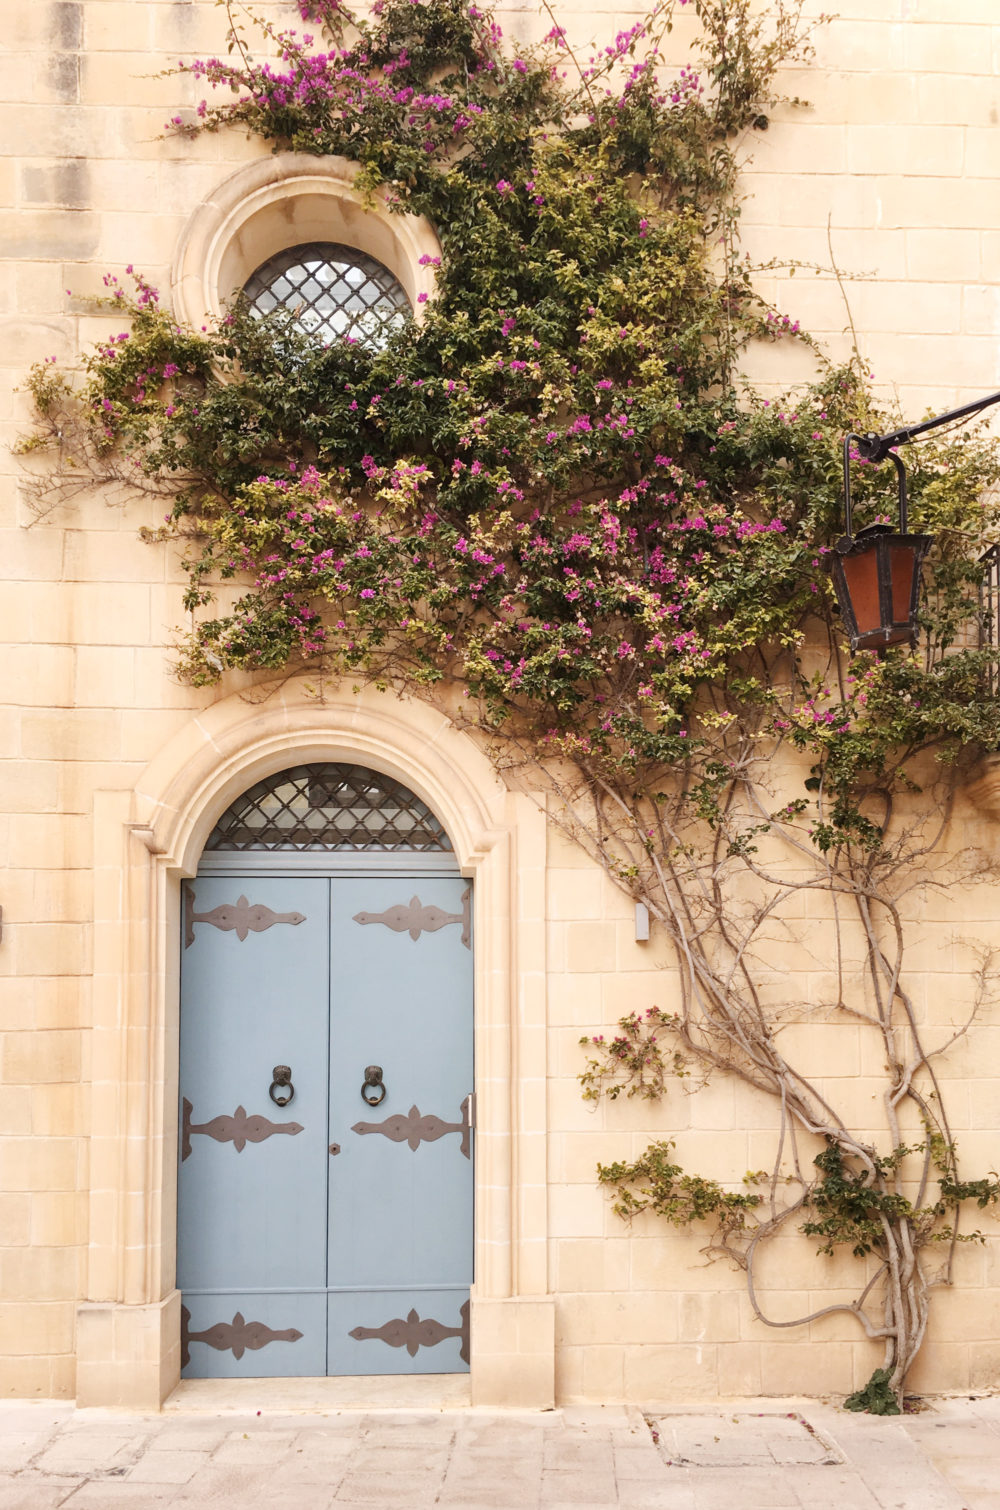 Malta Travel Guide. Mdina.